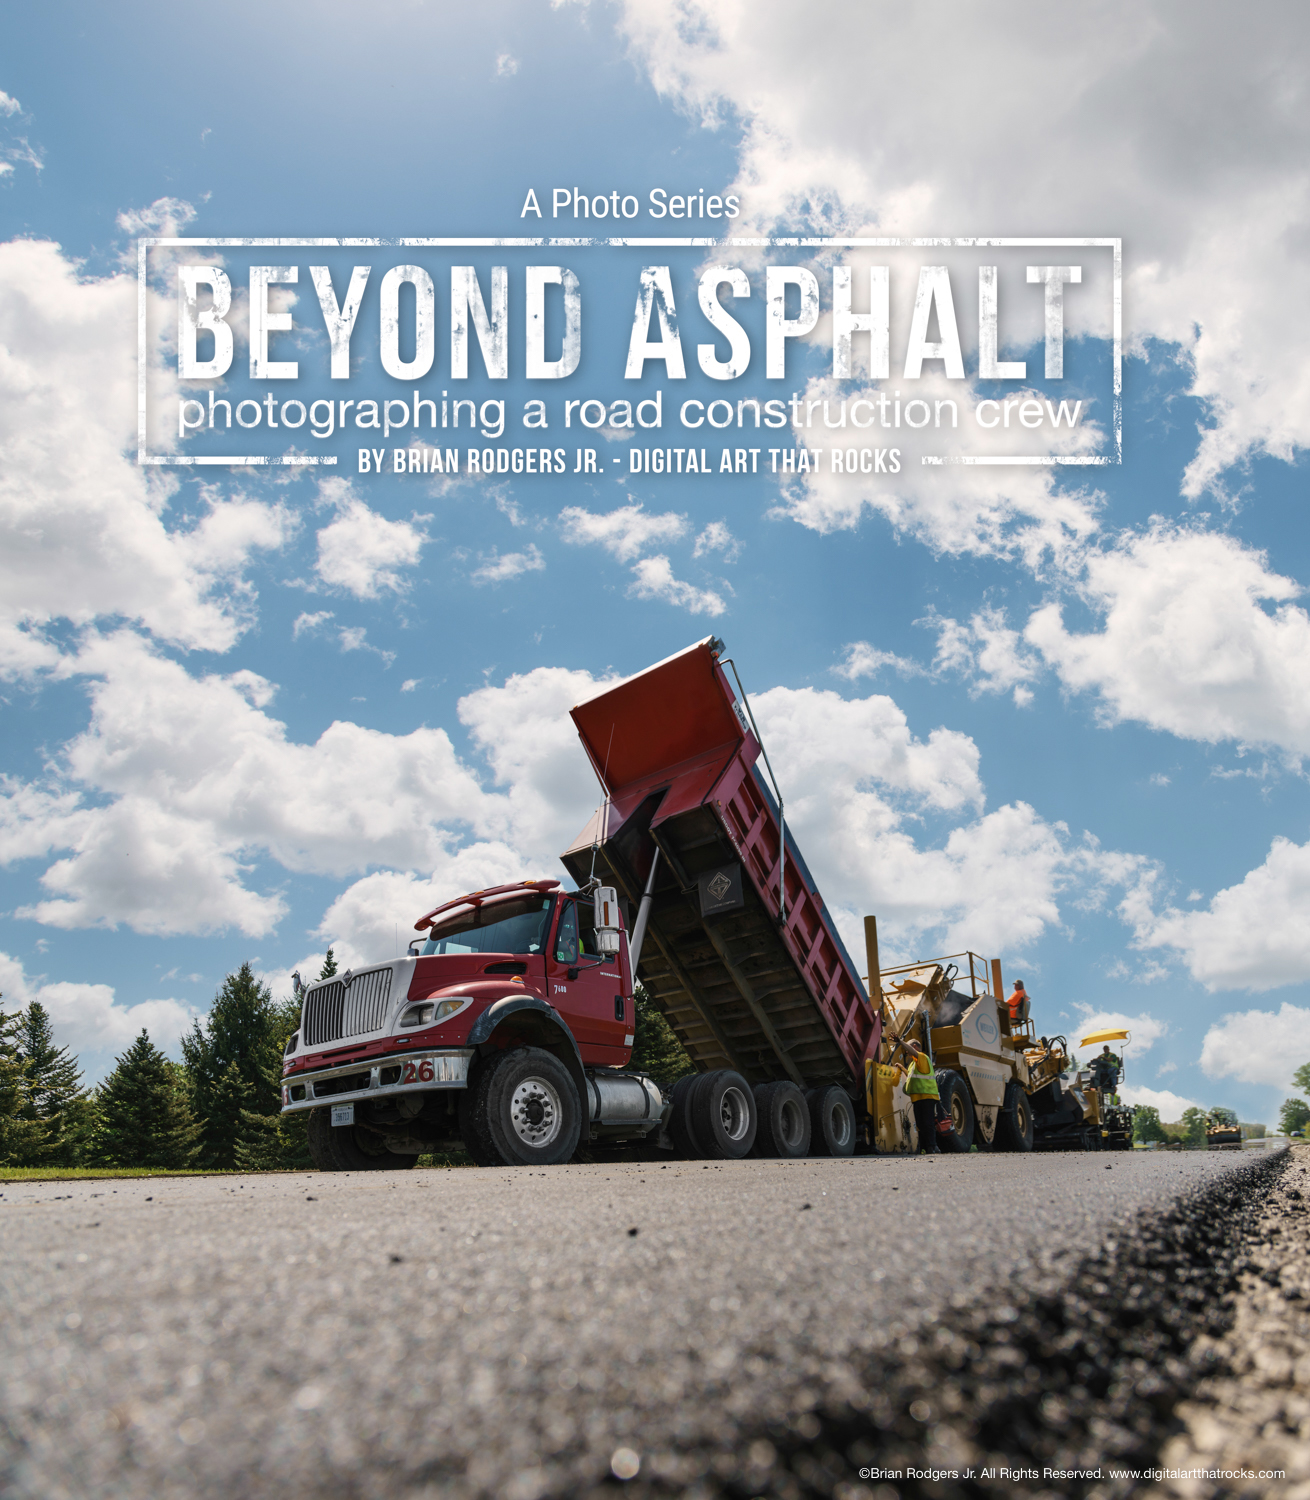 commercial-asphalt-vehicle-commercial-automotive-photography-brian-rodgers-jr-south-bend-digital-art-that-rocks